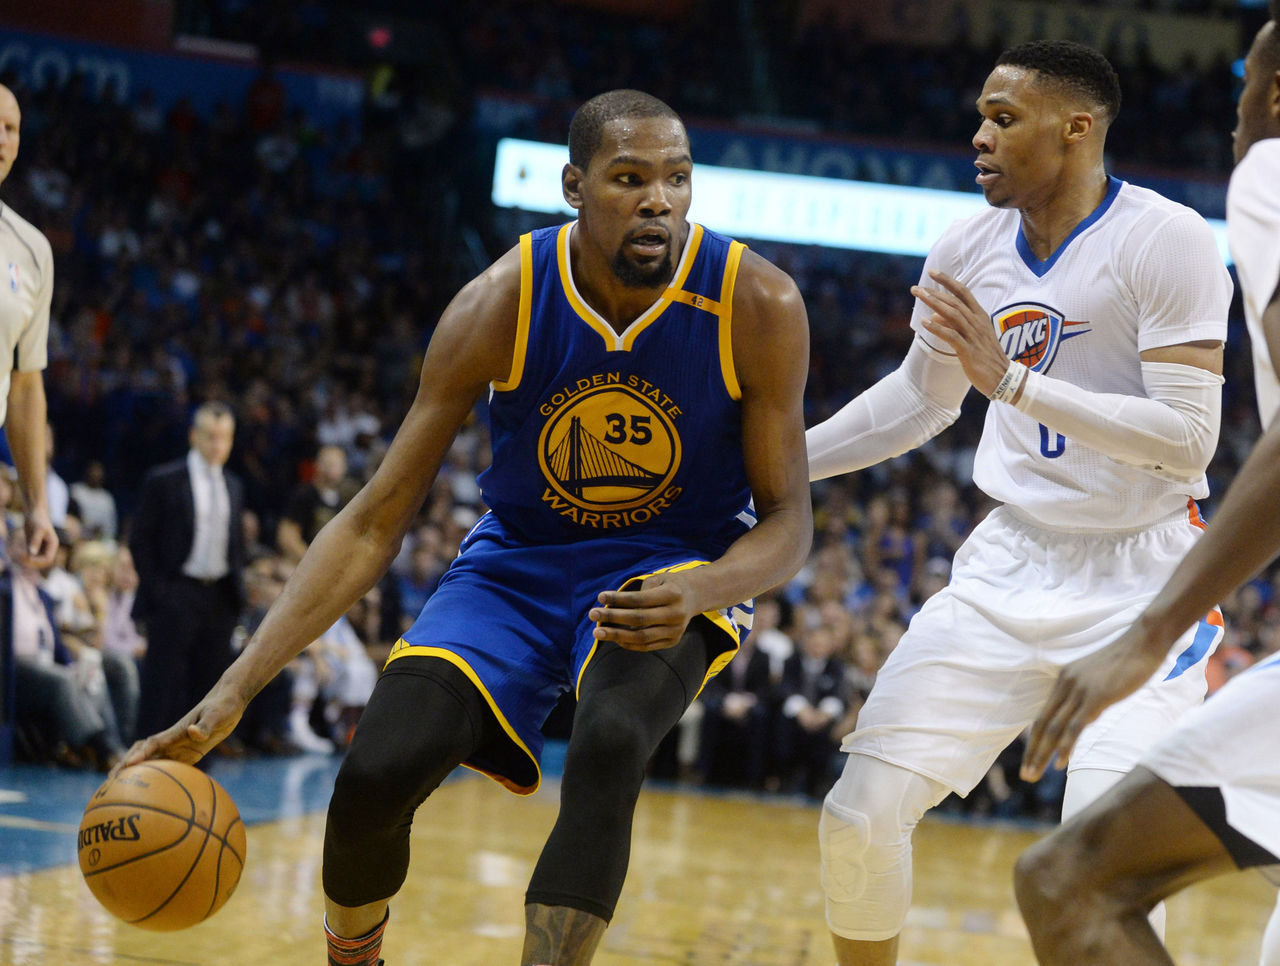 Cropped 2017 02 12t025856z 1188644296 nocid rtrmadp 3 nba golden state warriors at oklahoma city thunder